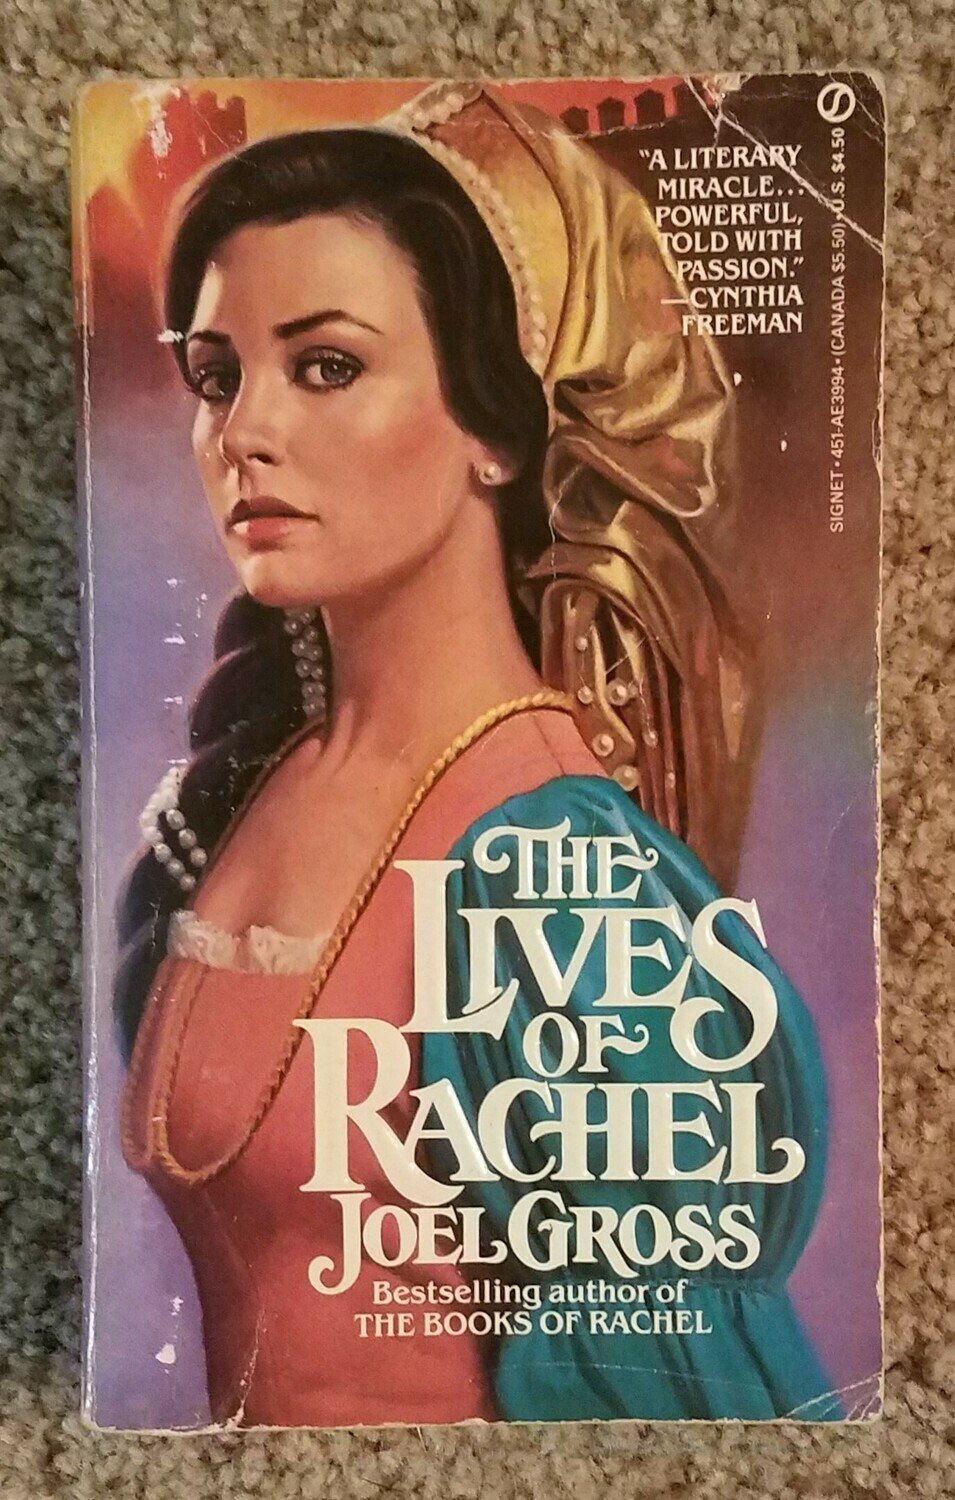 The Lives of Rachel by Joel Gross